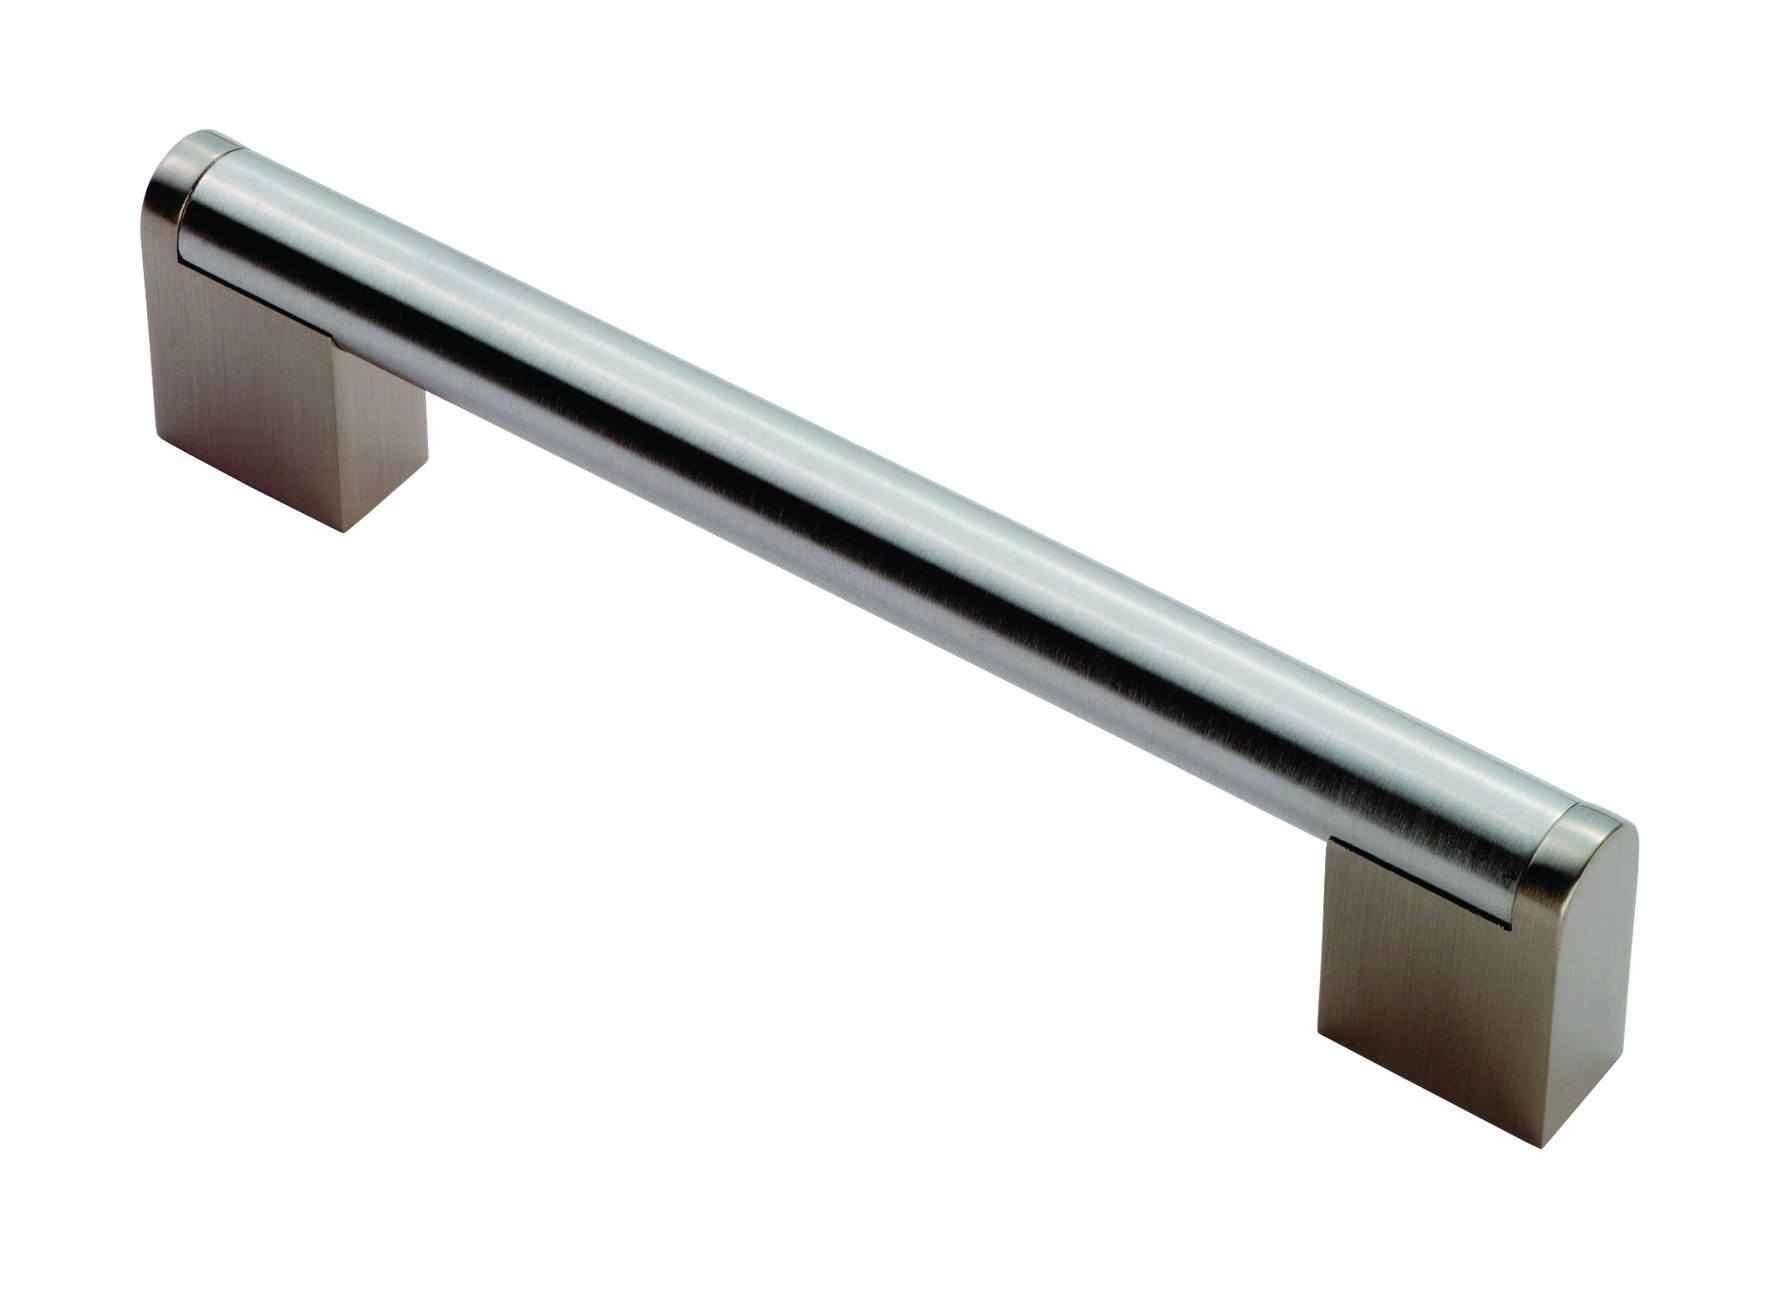 Handgreep Rvs Boss Bar D Handle 14mm Diameter Kitchen Handle